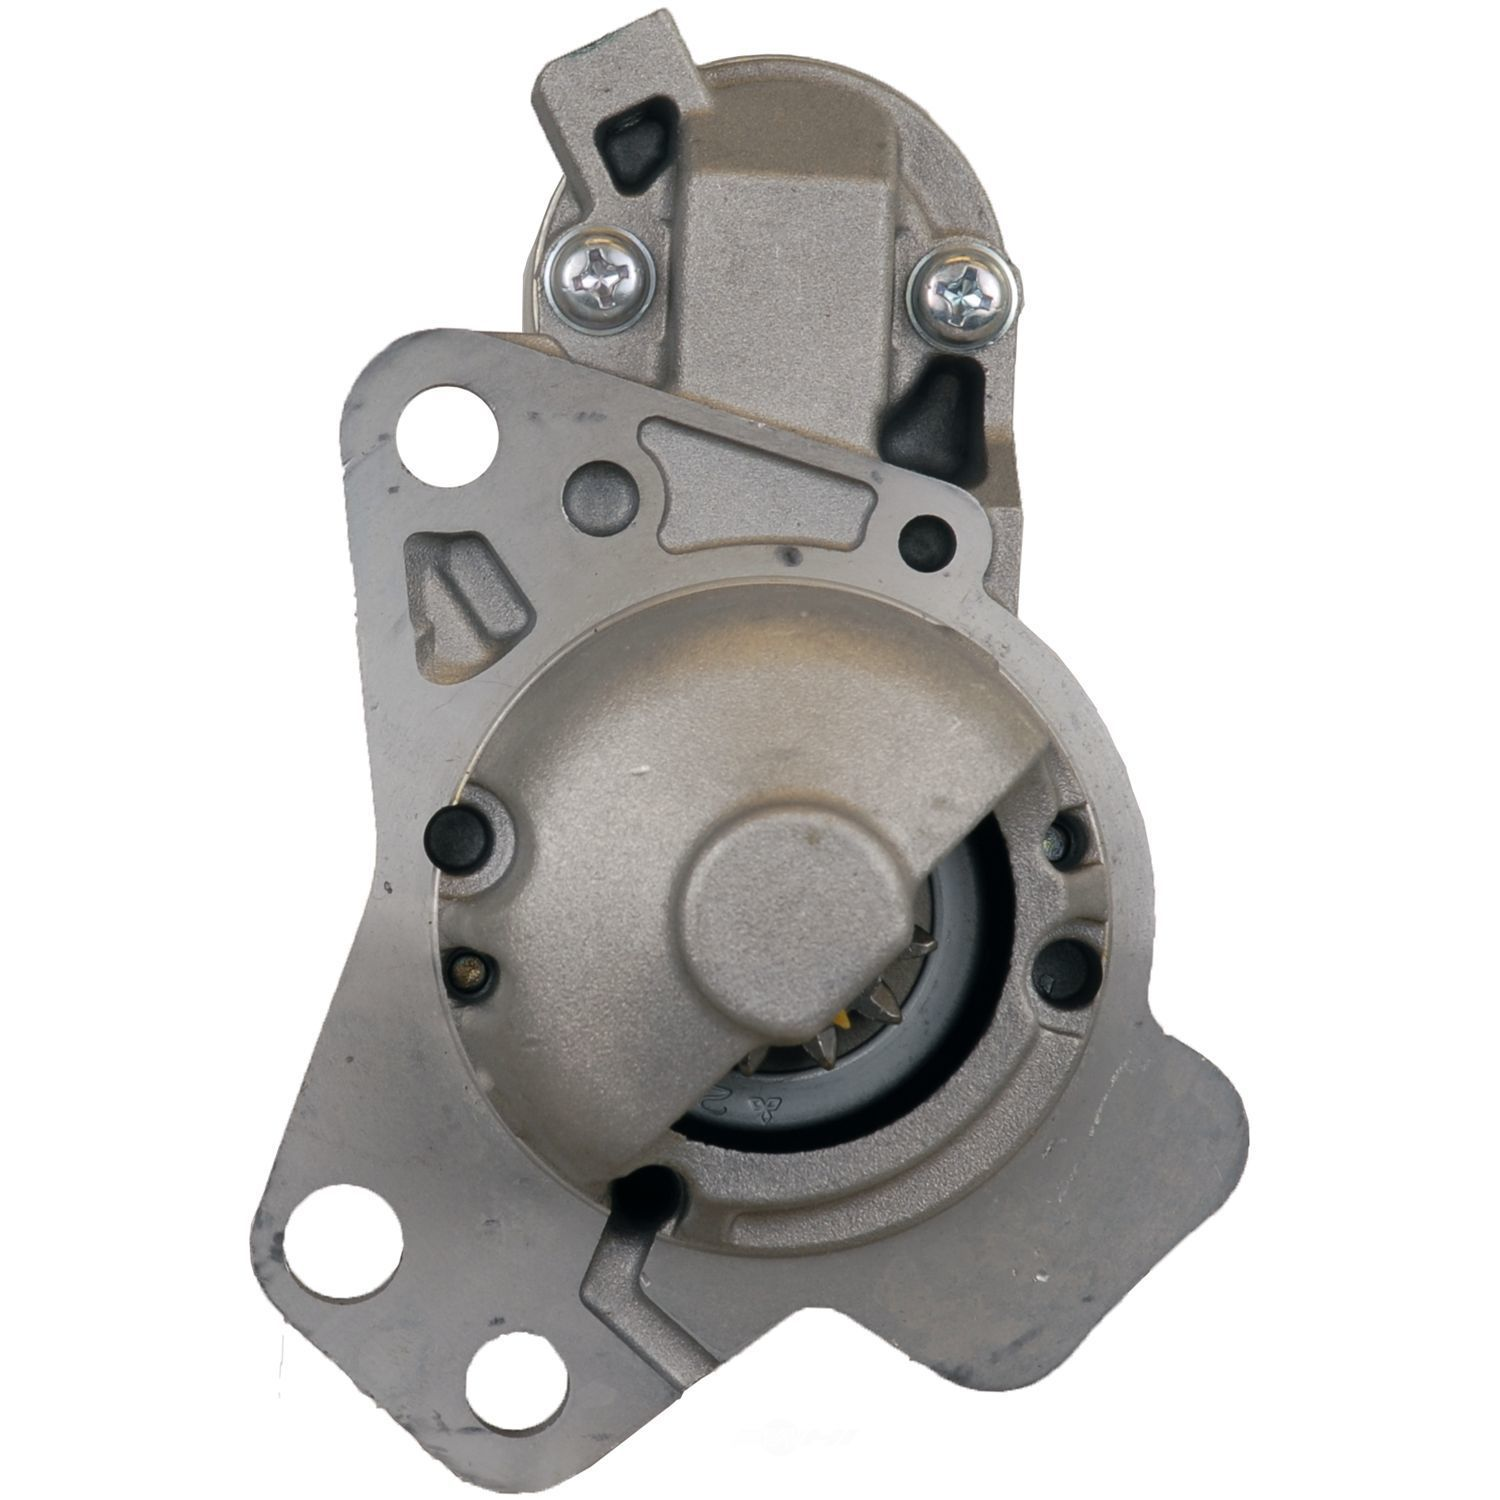 ACDELCO PROFESSIONAL - Starter Motor - DCC 337-1175